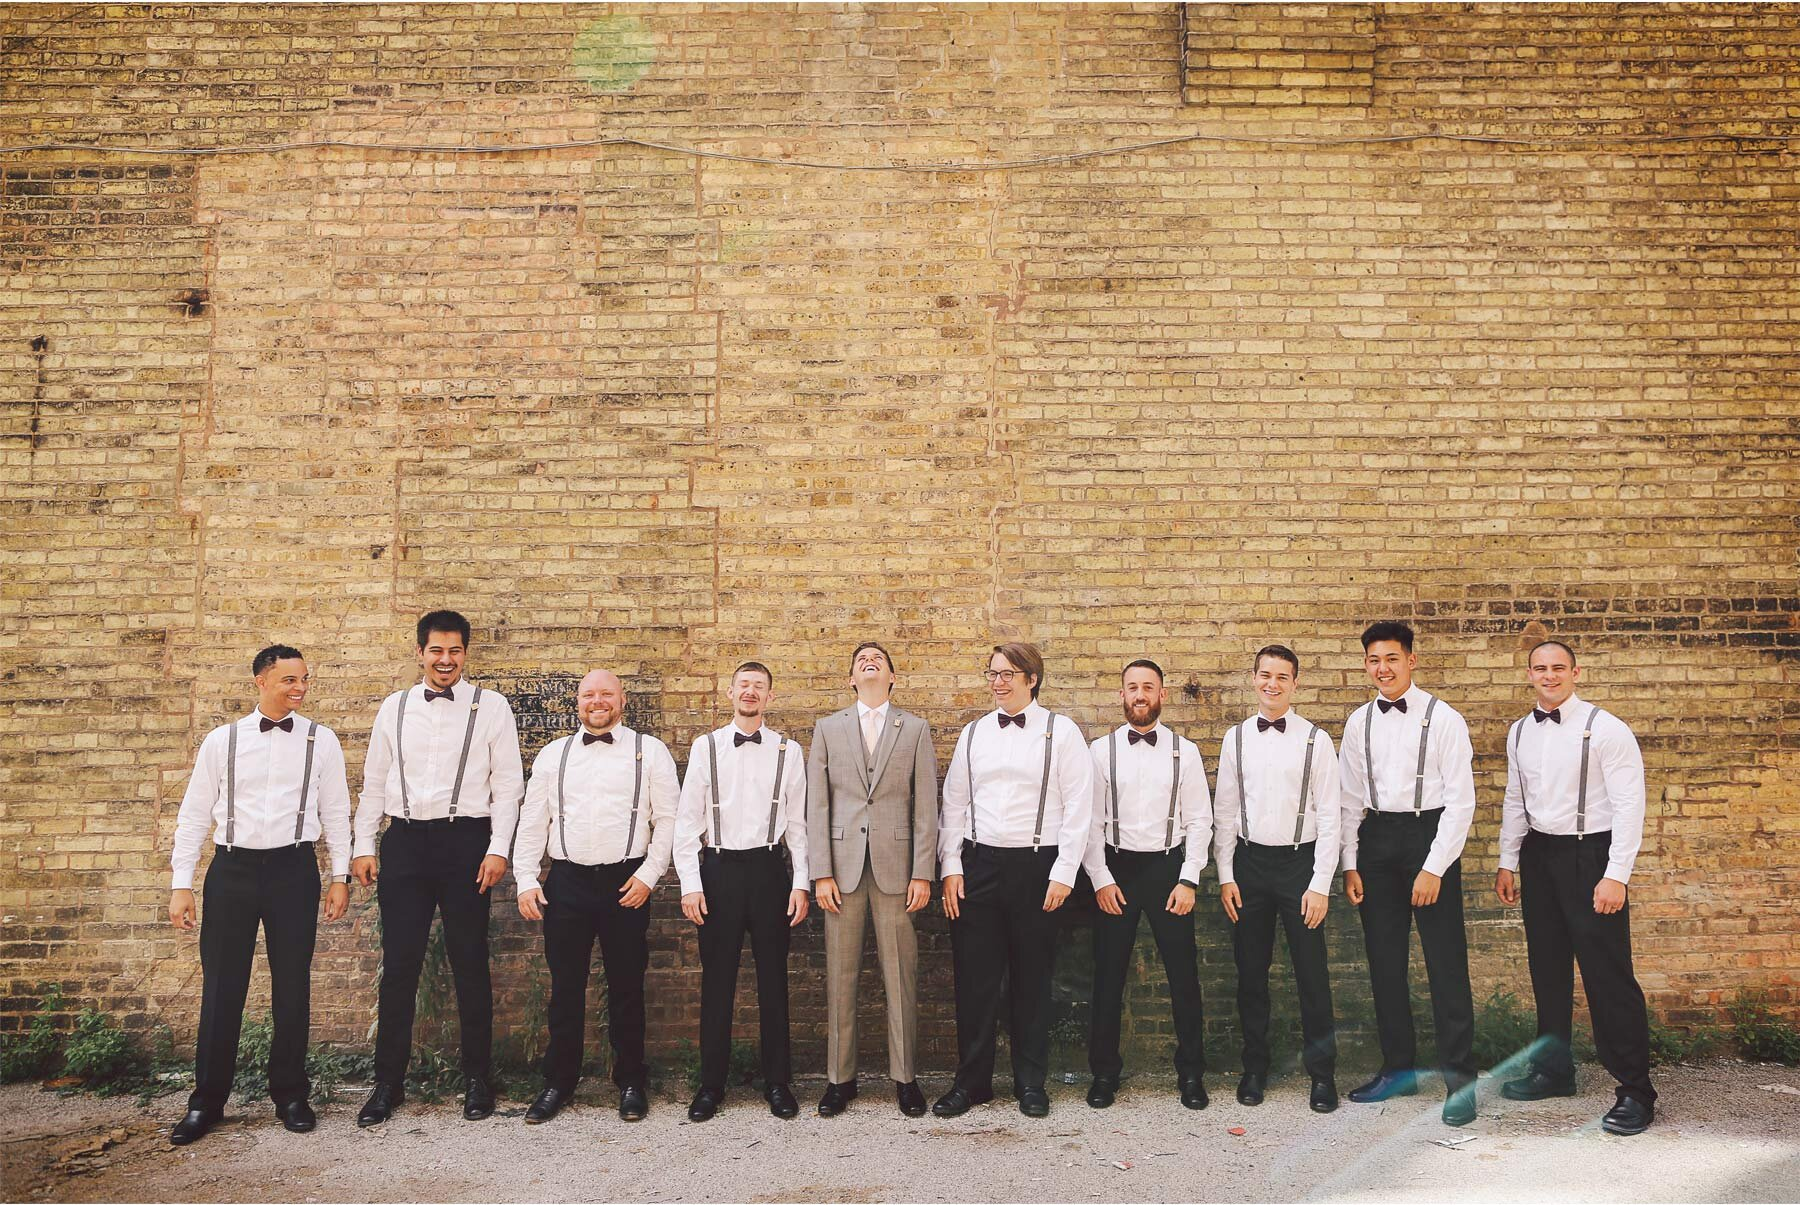 06-Wedding-by-Andrew-Vick-Photography-Chicago-Illinois-Groom-Groomsmen-Downtown-Brownstone-Ashley-and-Nicholas.jpg